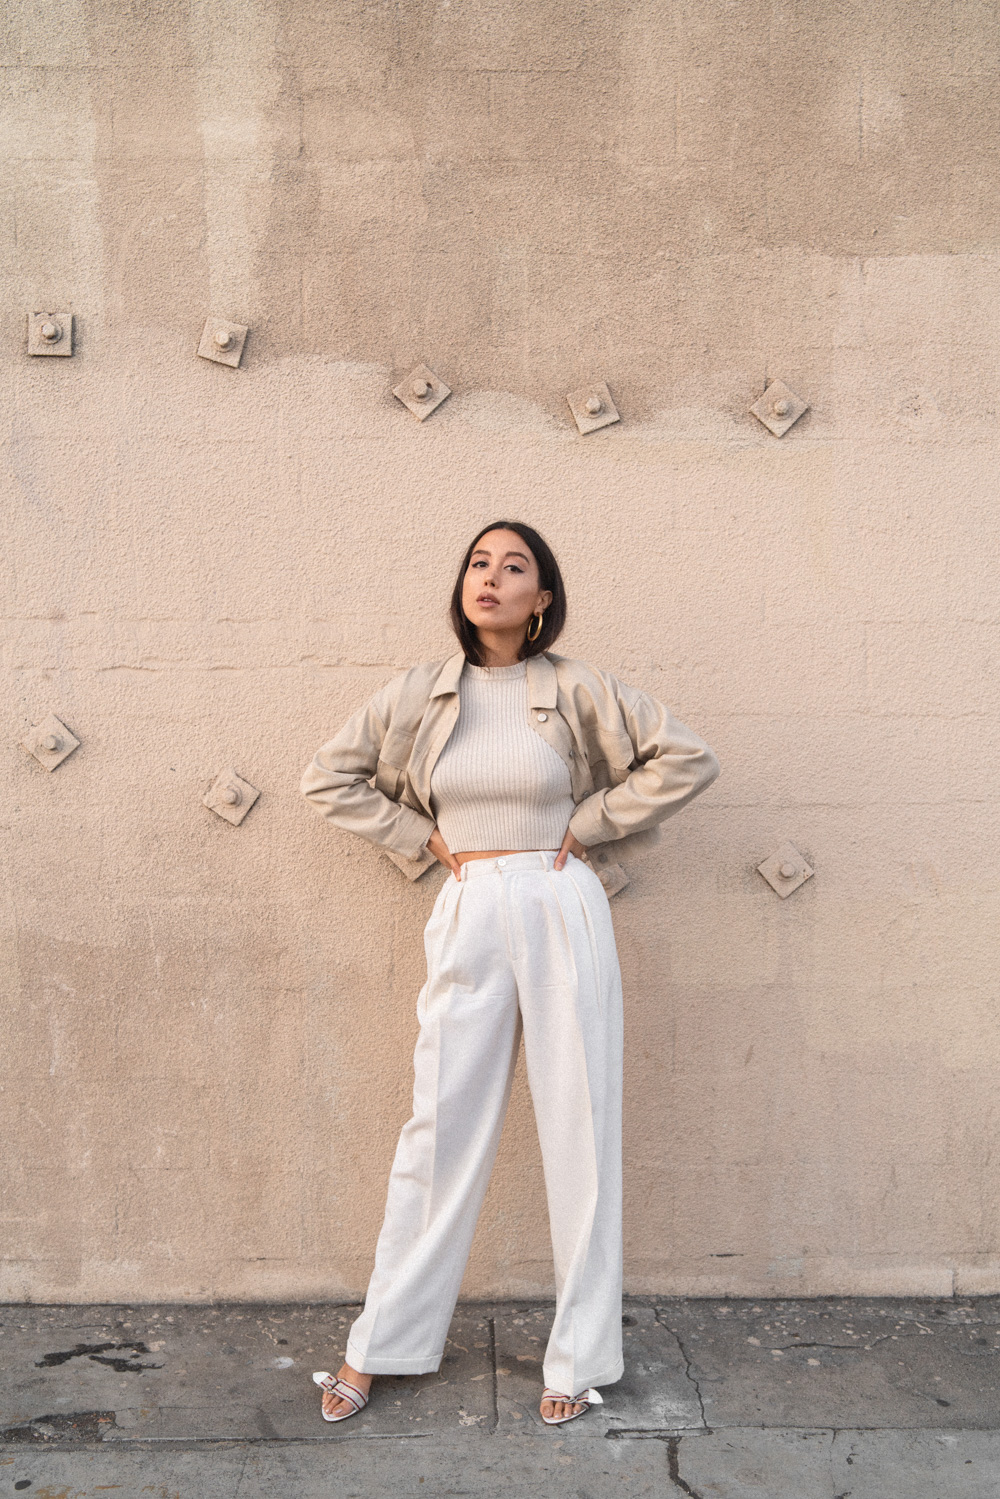 Emily Tong of Love Or Money Blog Wearing Vintage Wide Leg Trousers And Miu Miu Sandals